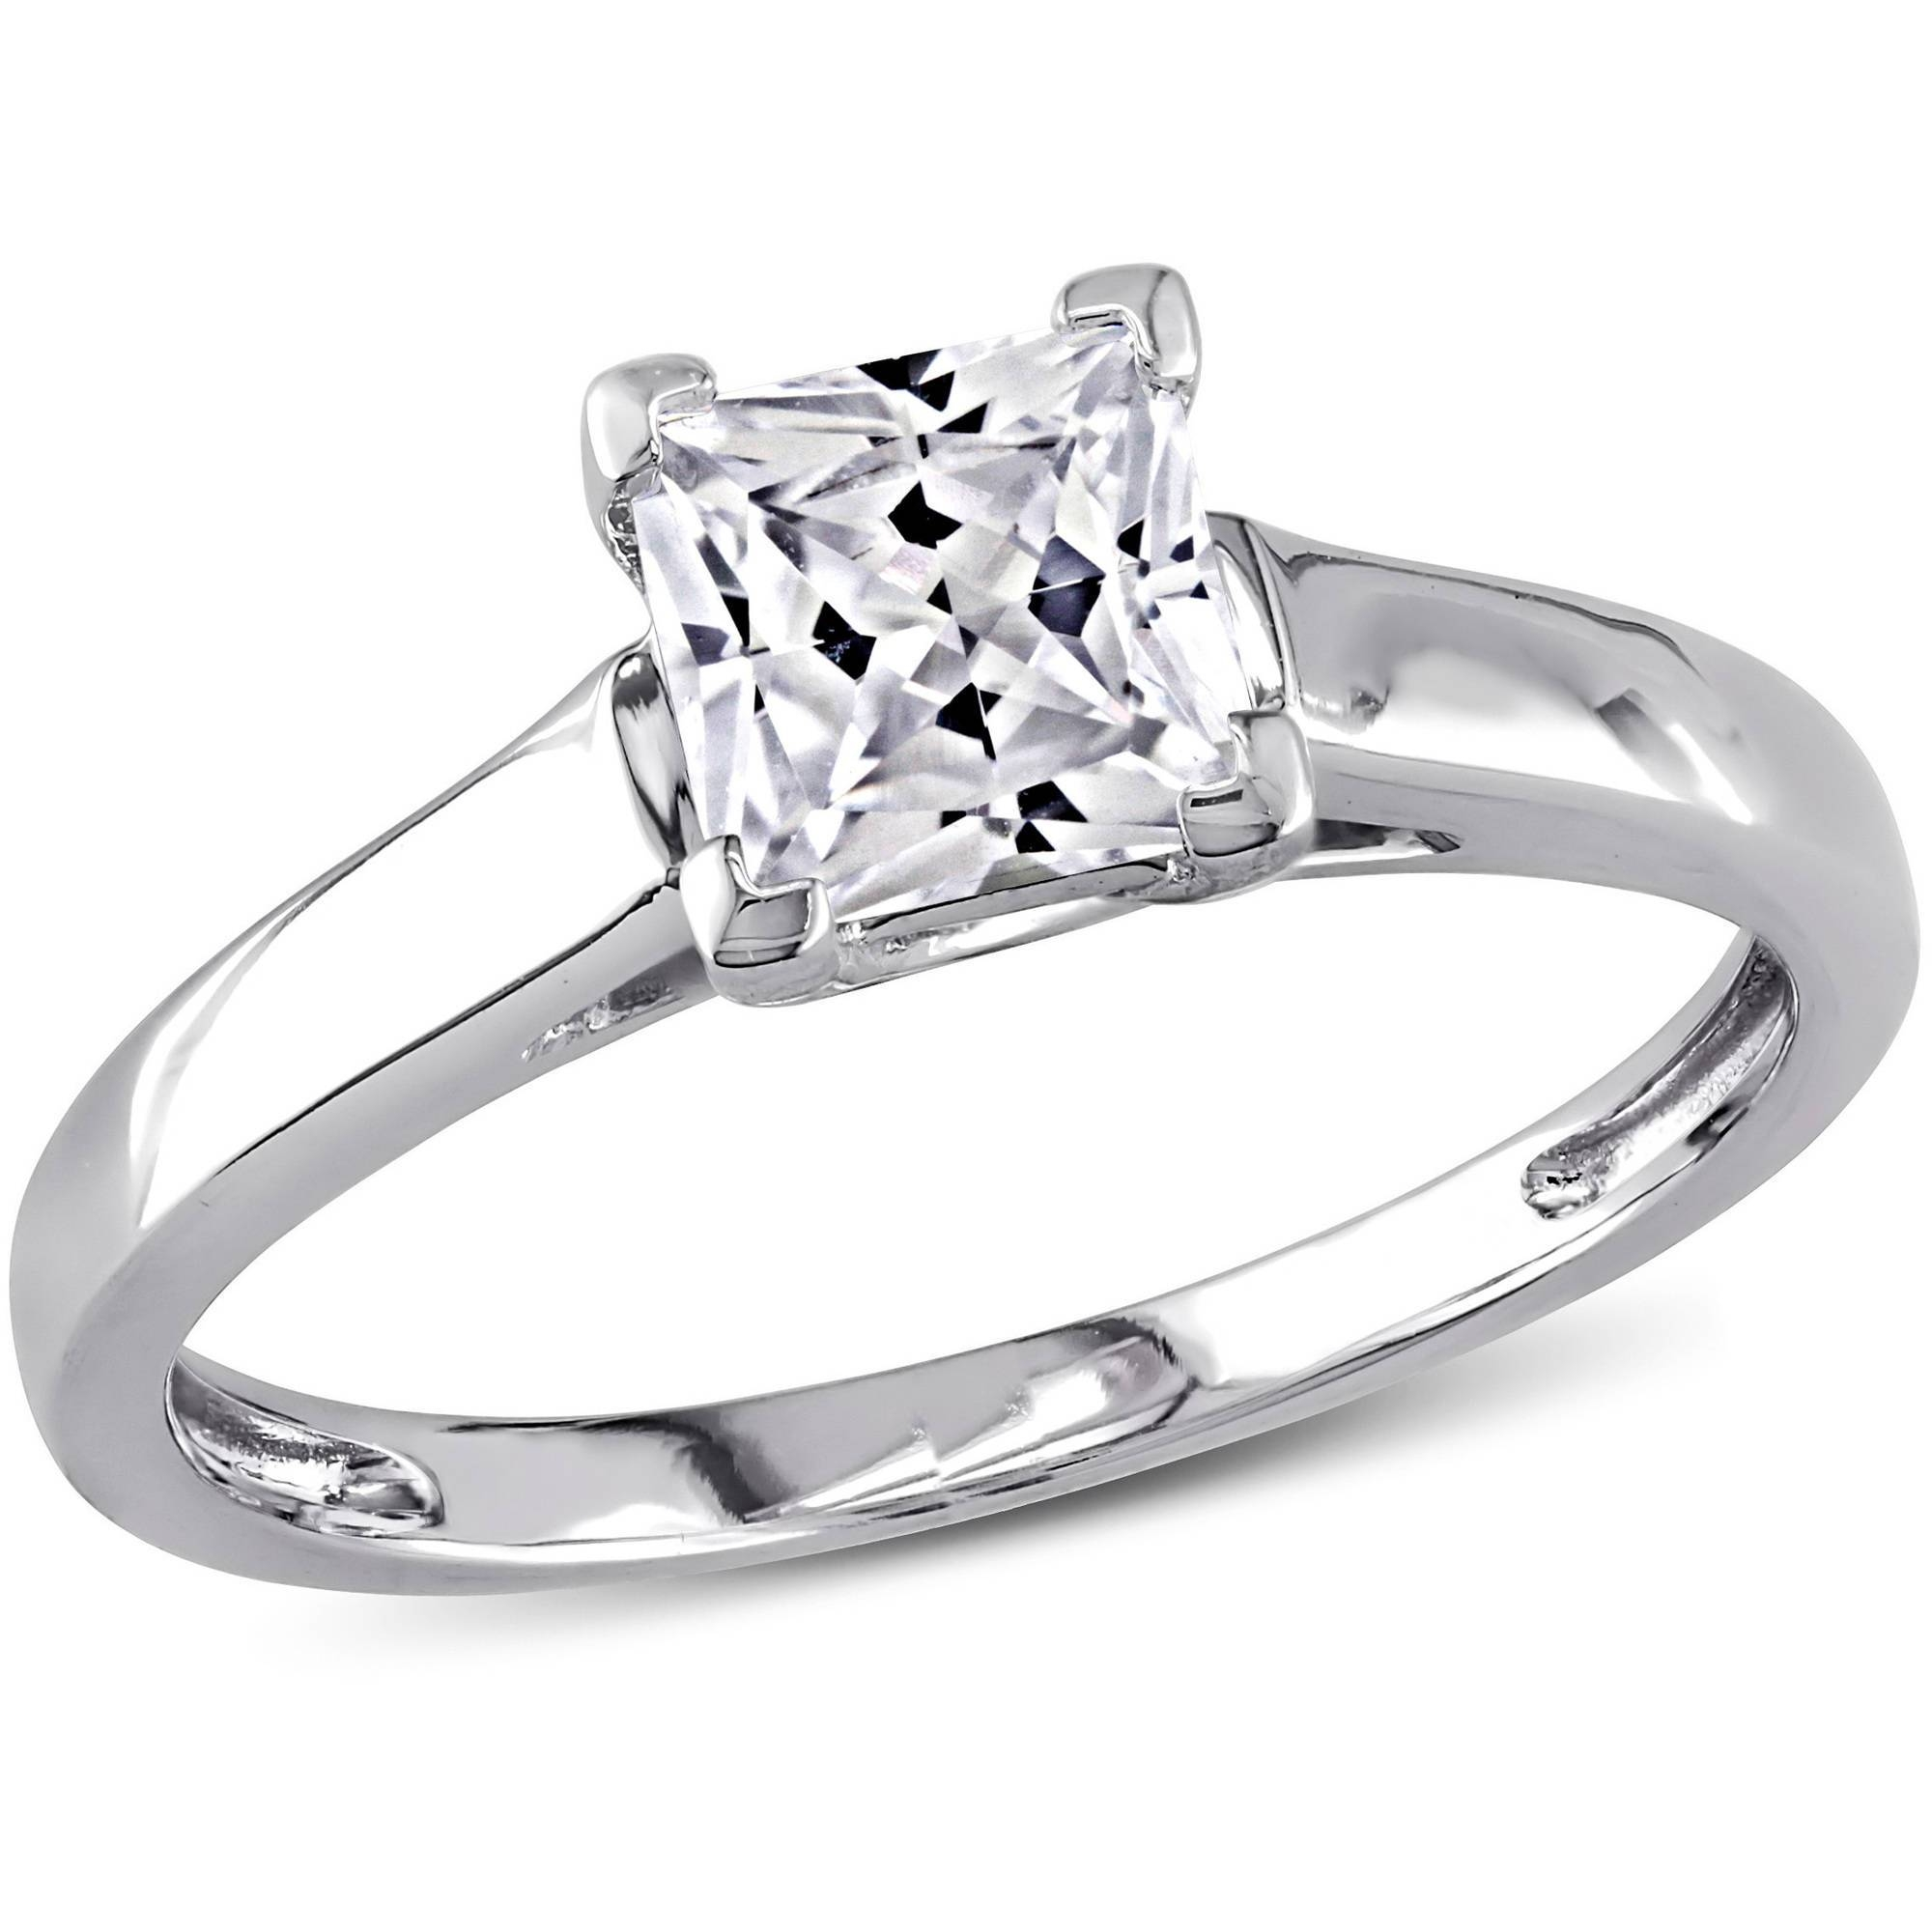 1 1/2 Carat T.w. Genuine Princess White Diamond 14Kt White Gold Throughout White Gold Engagement Rings (Gallery 11 of 15)